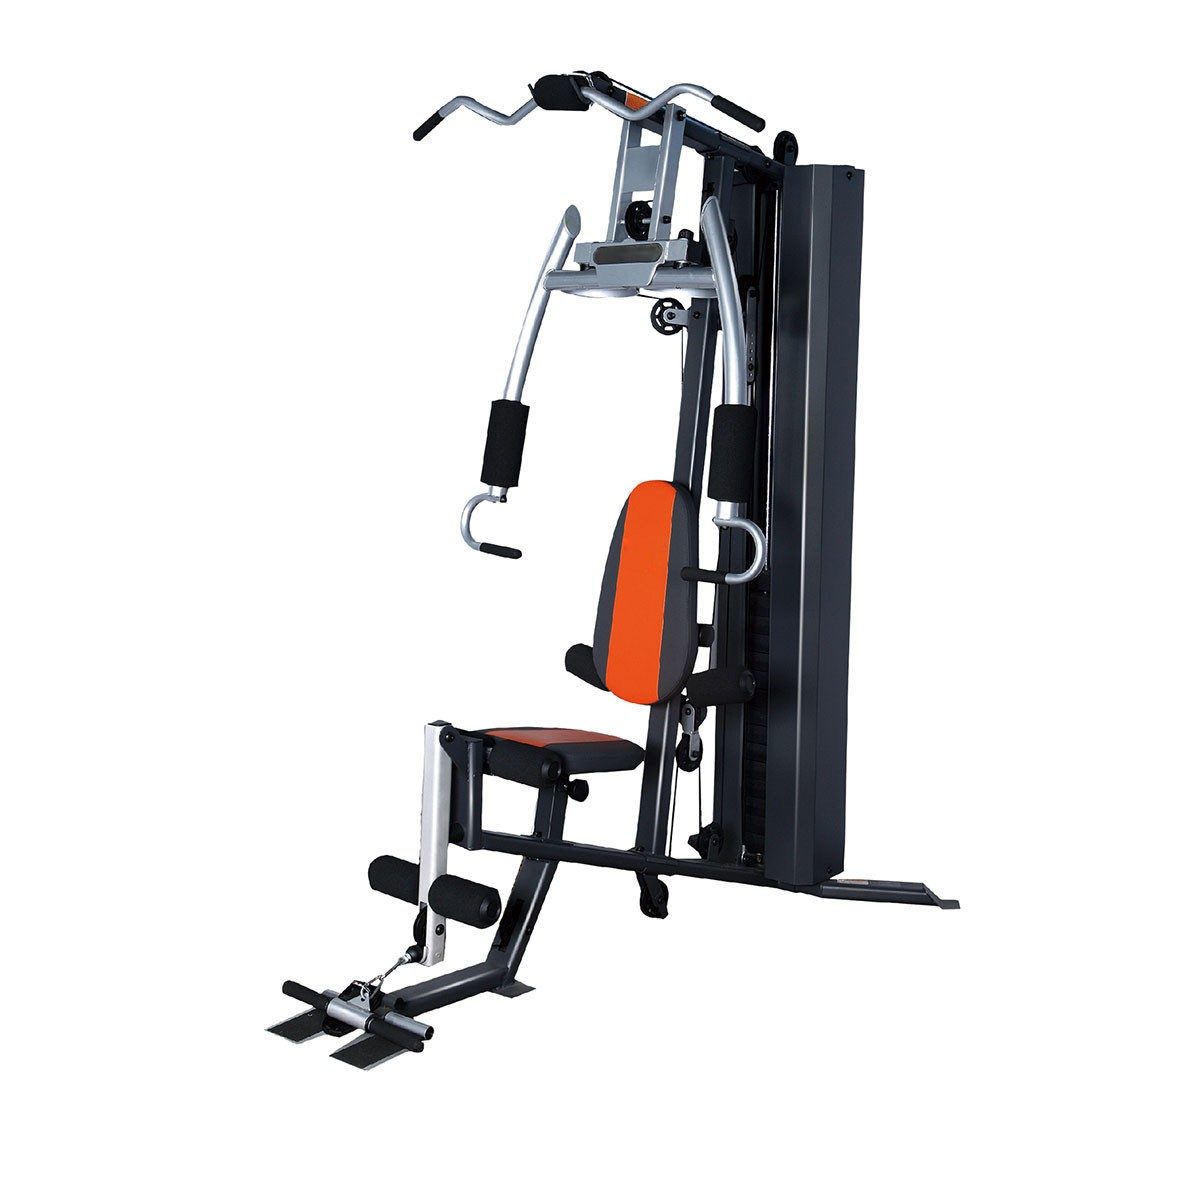 Single Stack Multi-function Home Gym (JX-188)